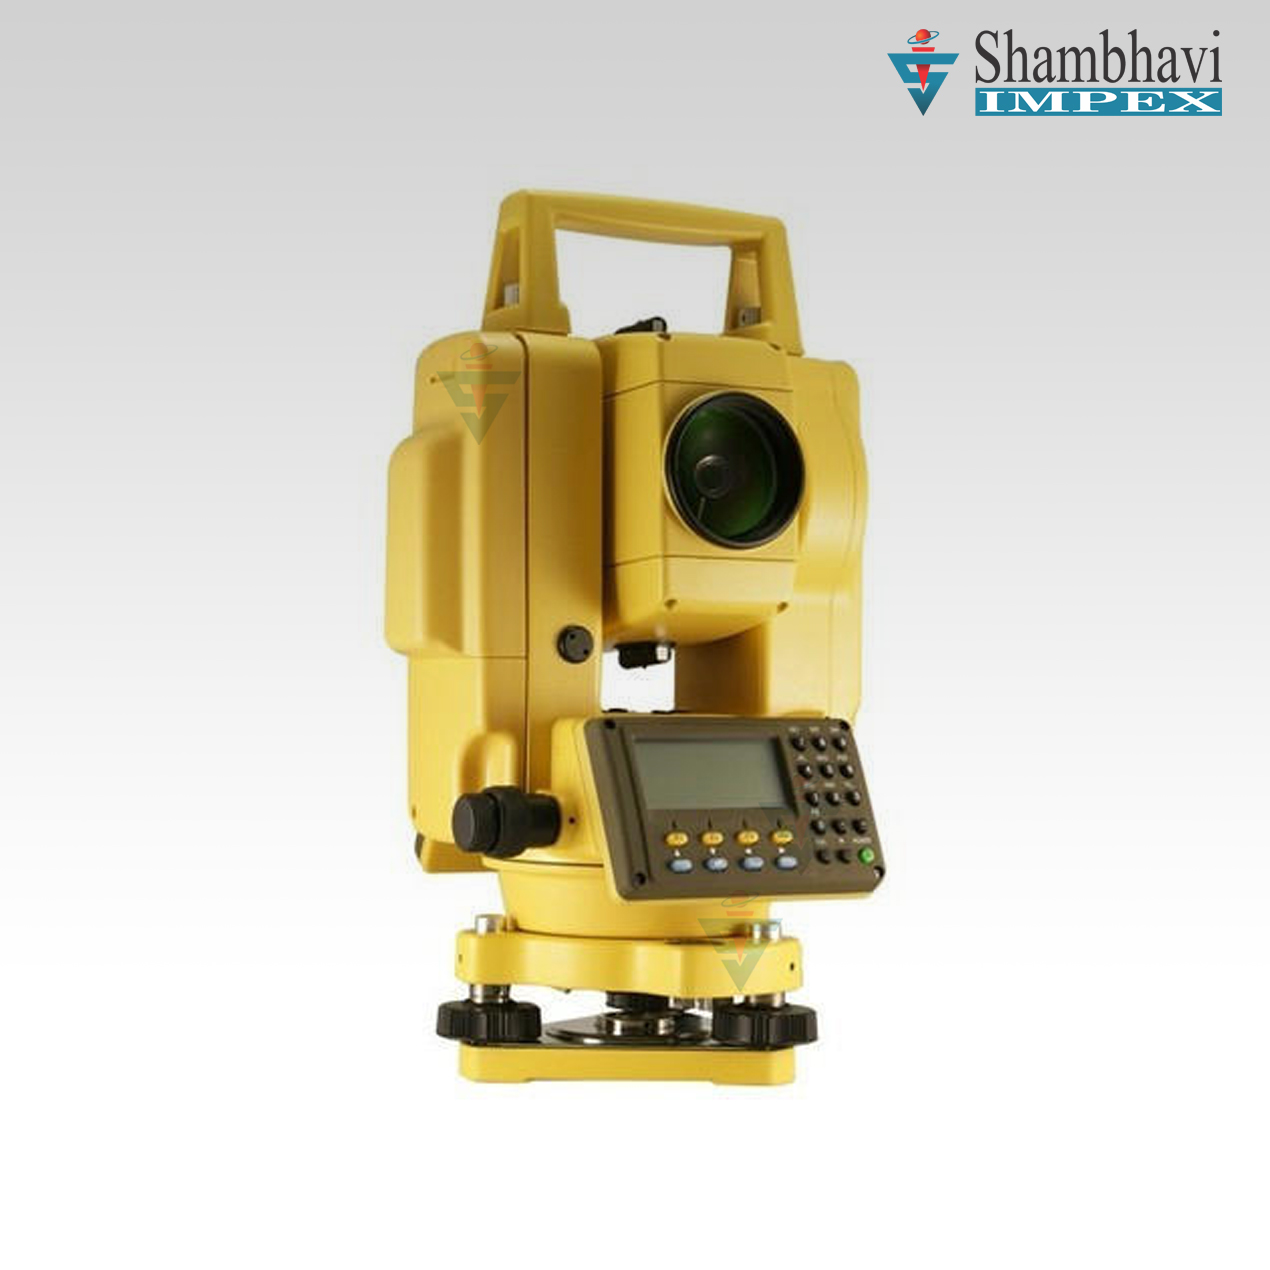 NTS-370 R Series Total Station